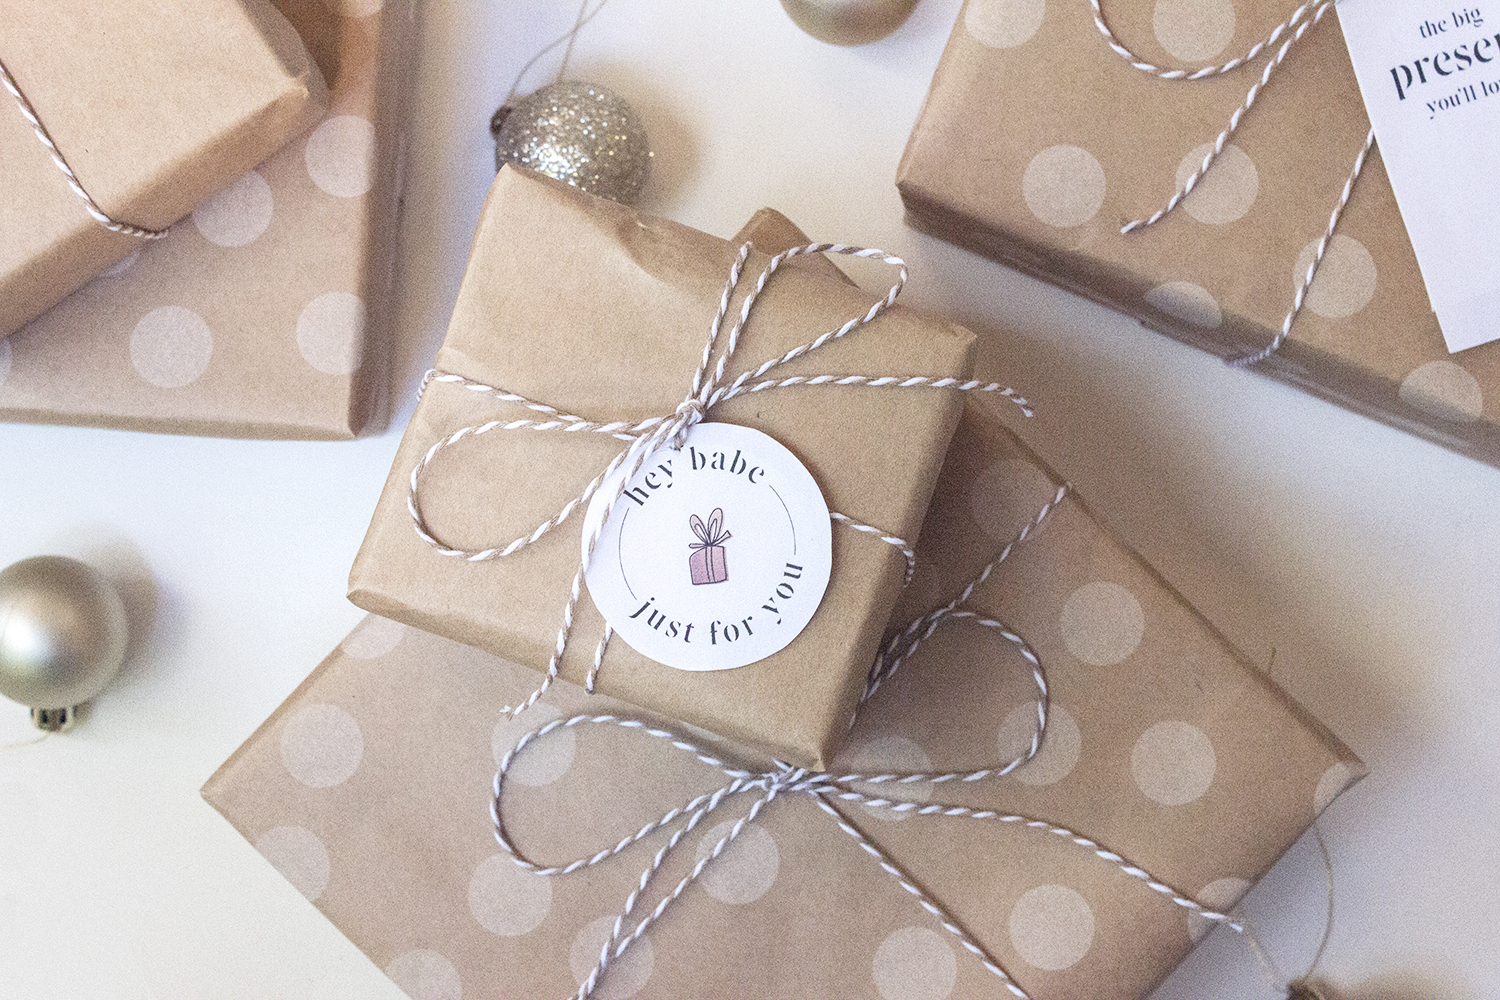 graphic design holiday tags, rustic holiday wrapping   reux design co.